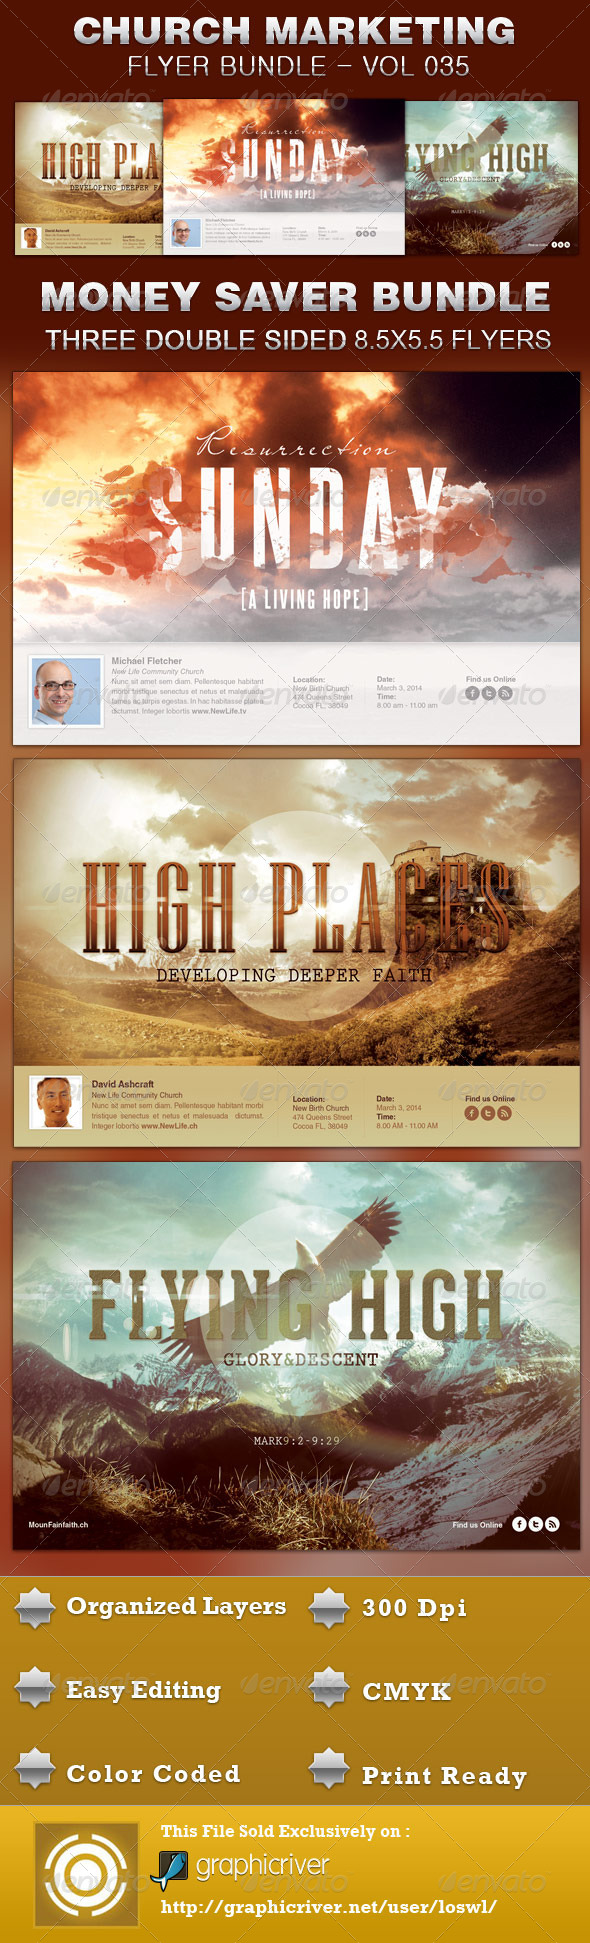 GraphicRiver Church Marketing Flyer Bundle Vol 035 5211154